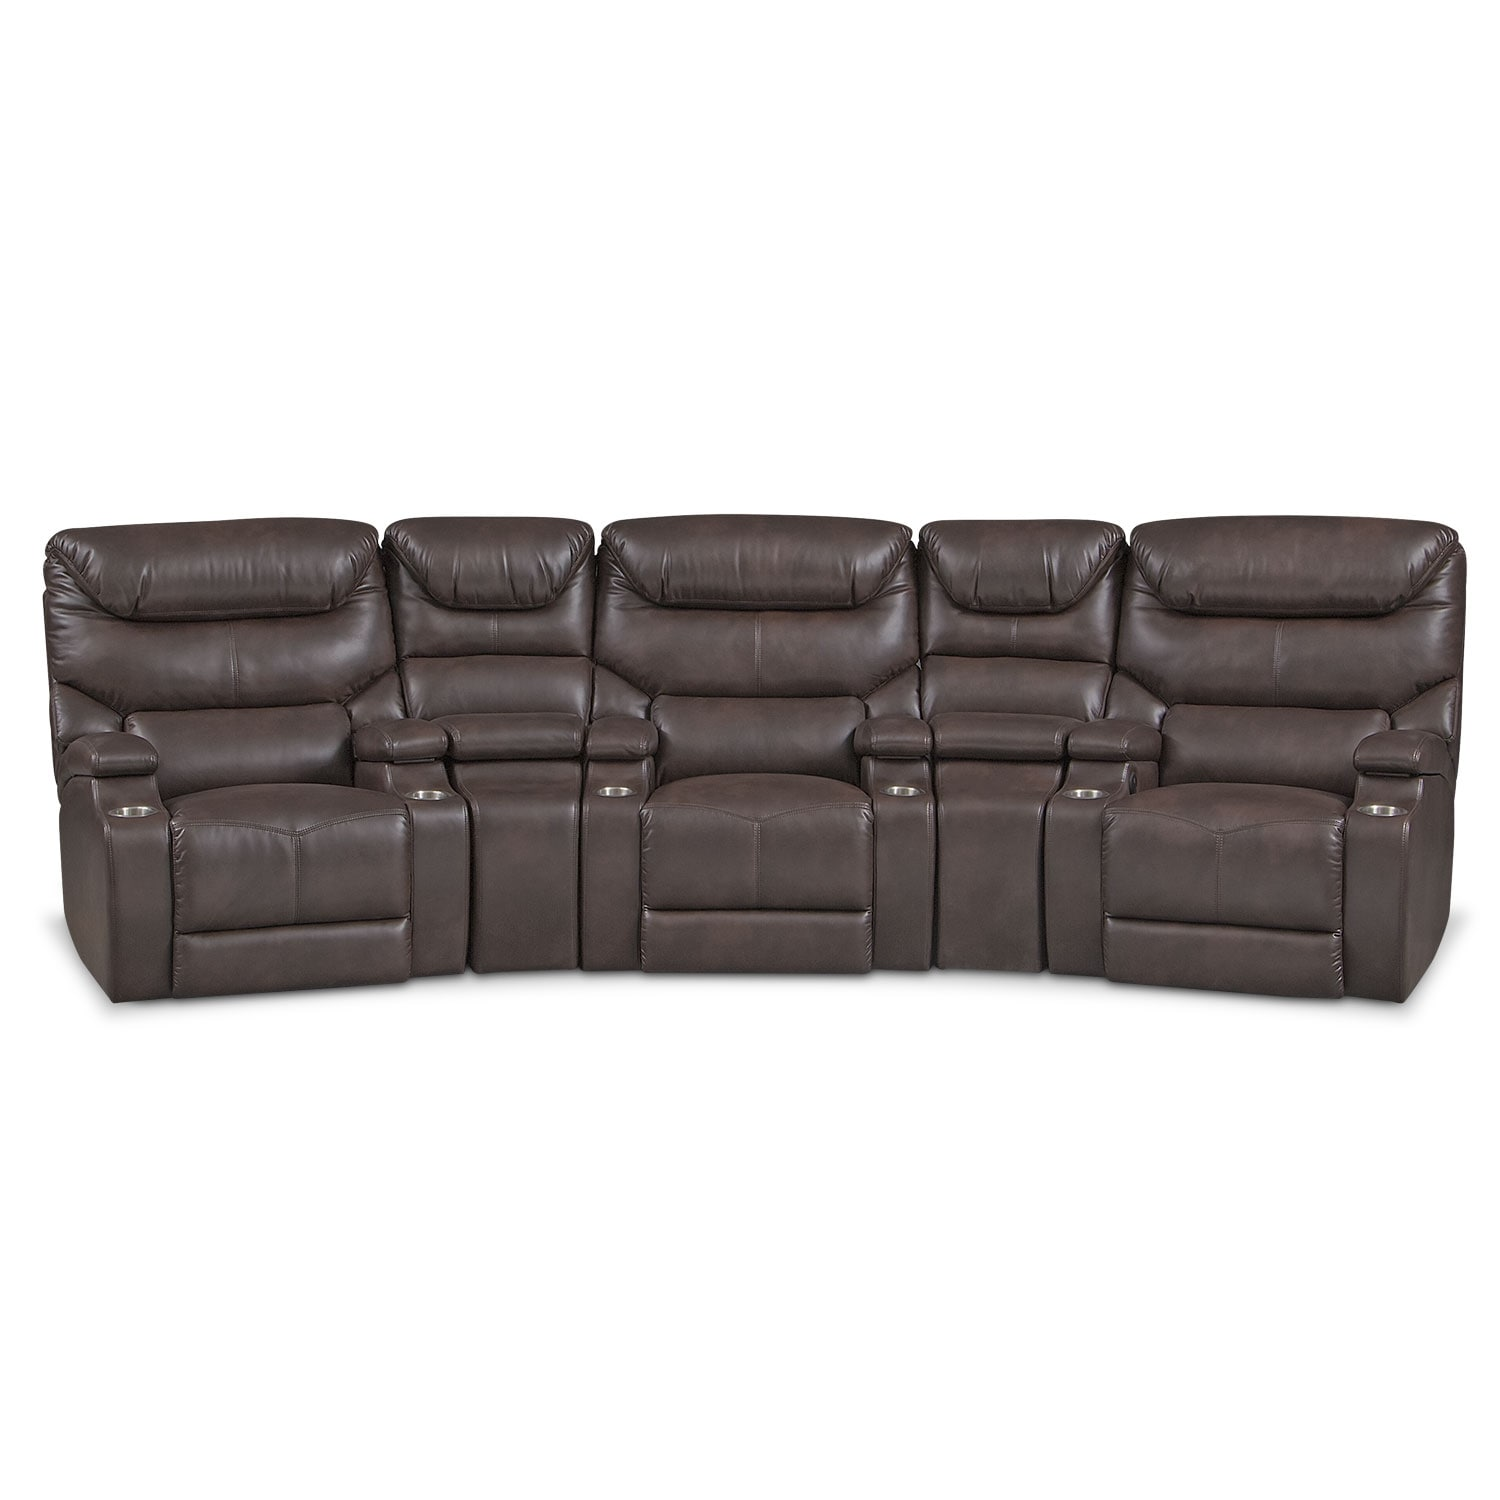 Living Room Furniture - Jupiter Brown 5 Pc. Power Home Theater Sectional